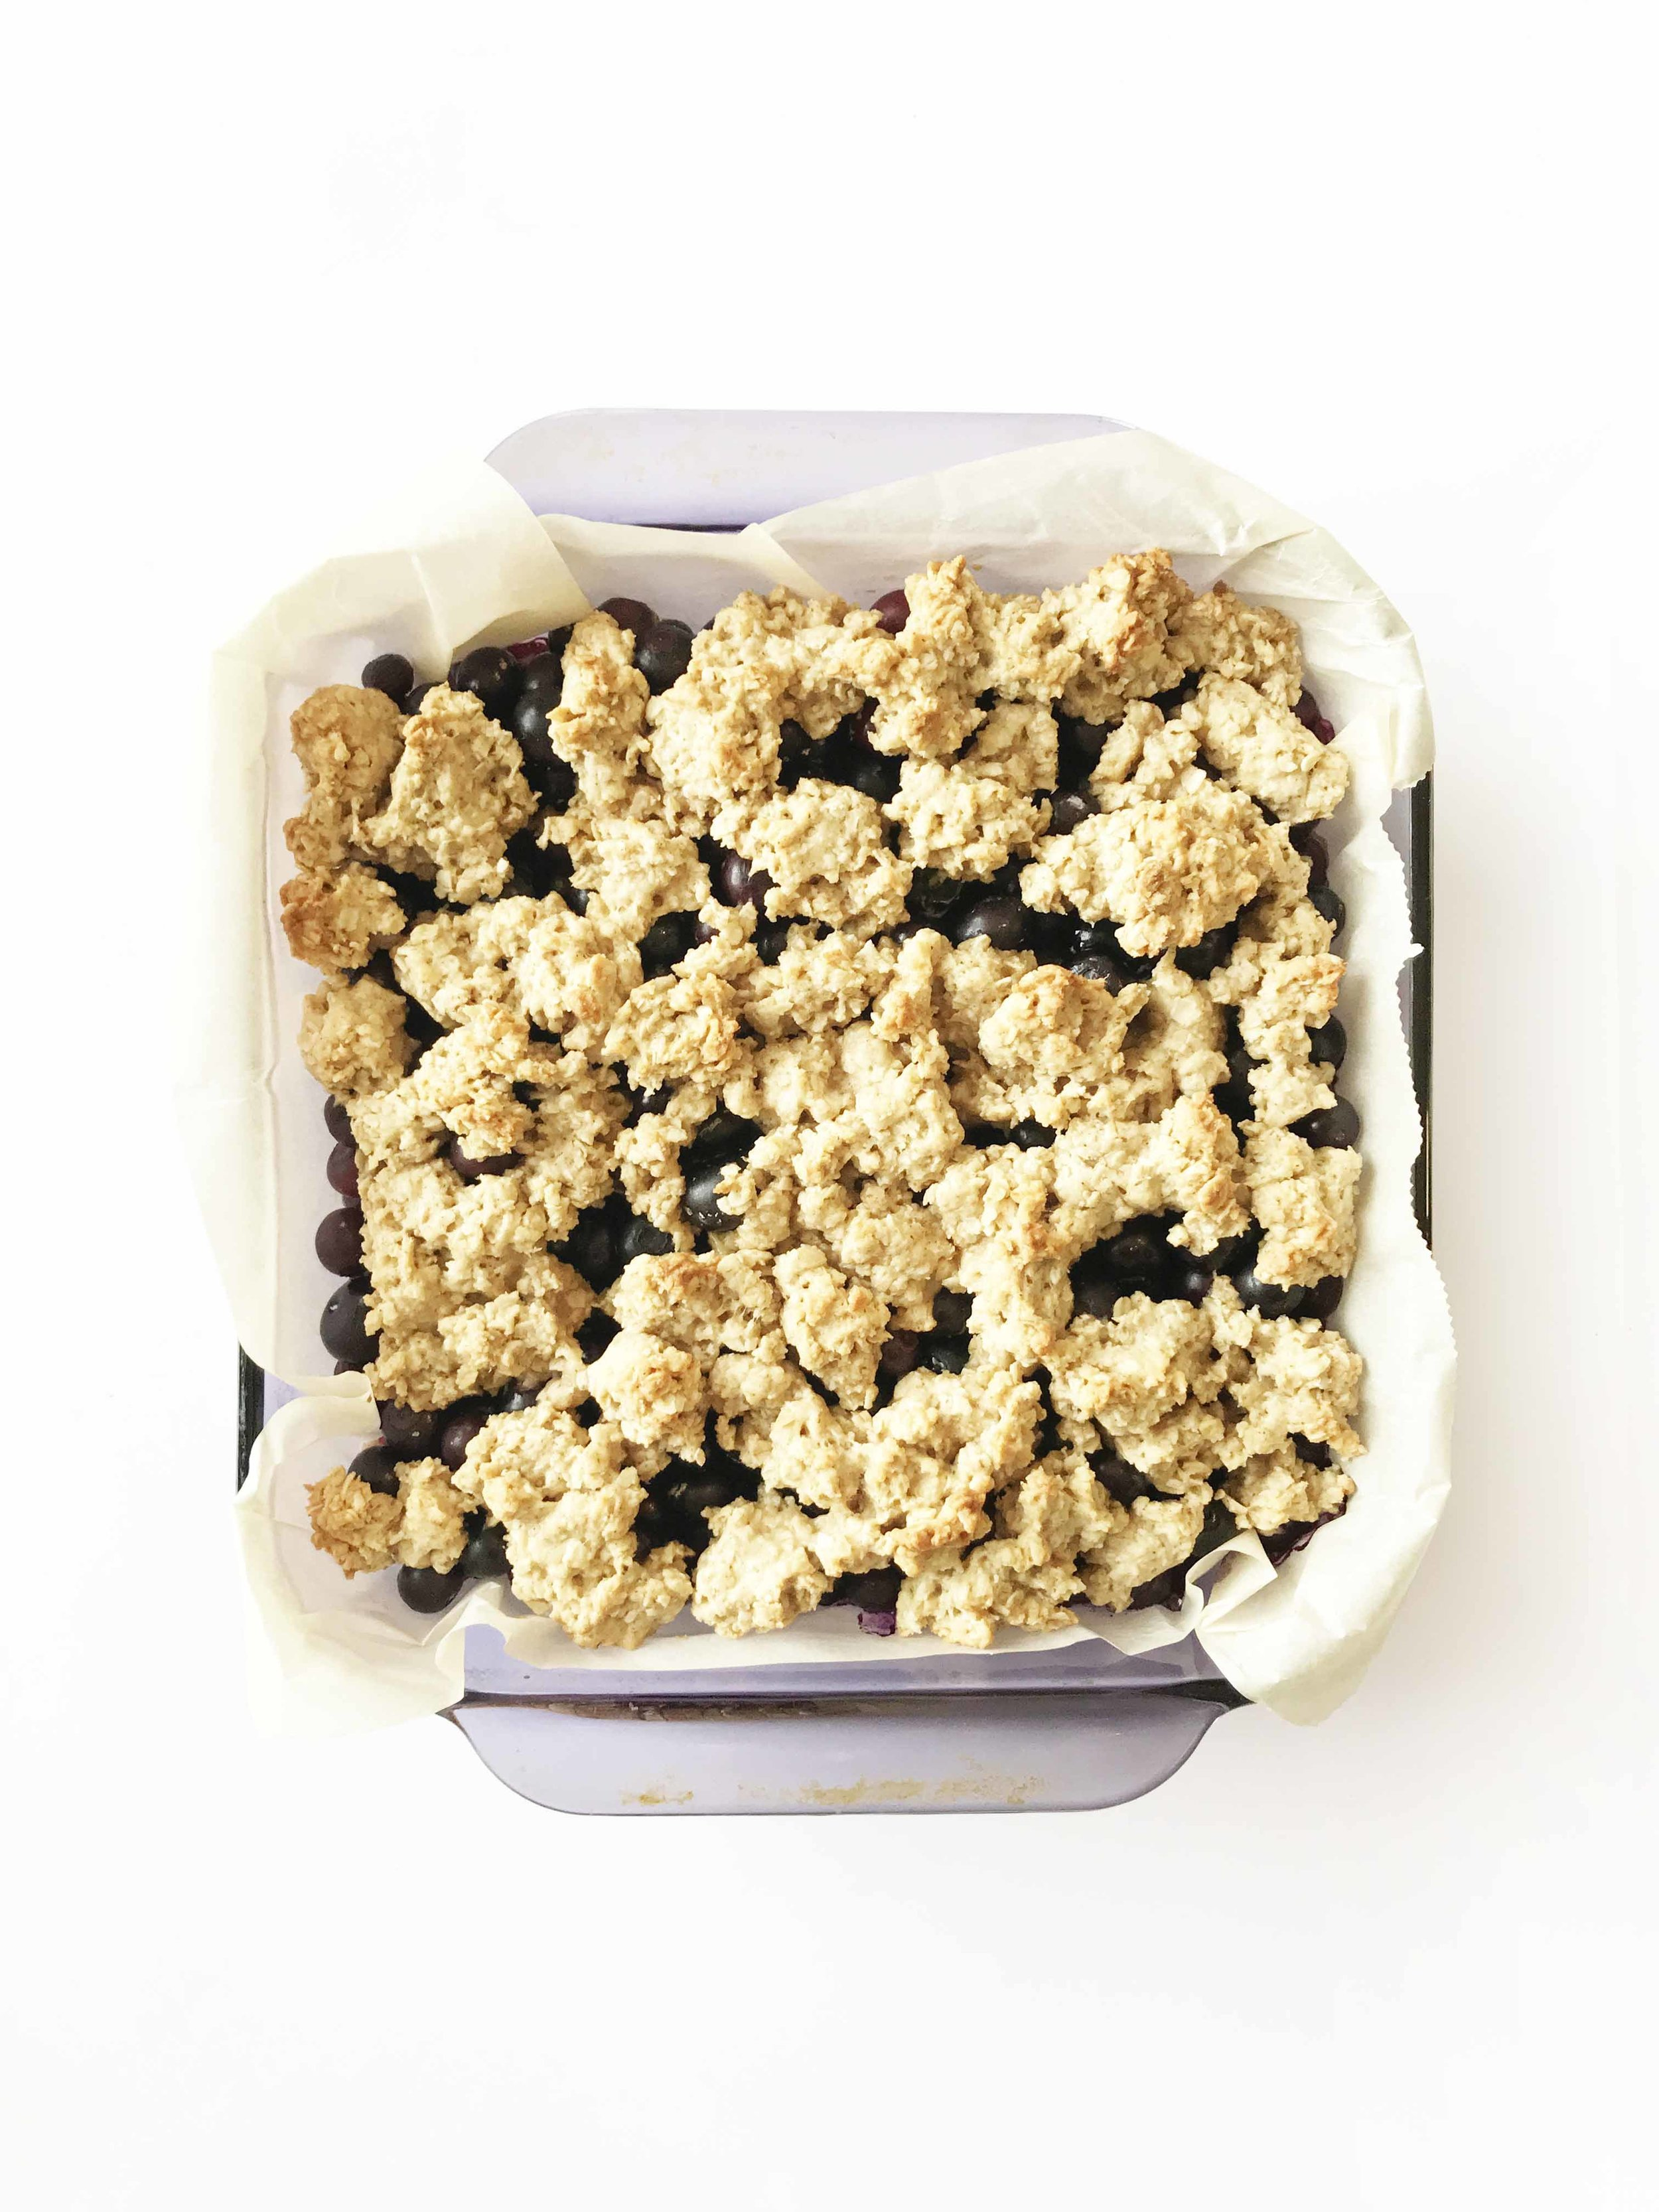 blueberry-oat-bars7.jpg